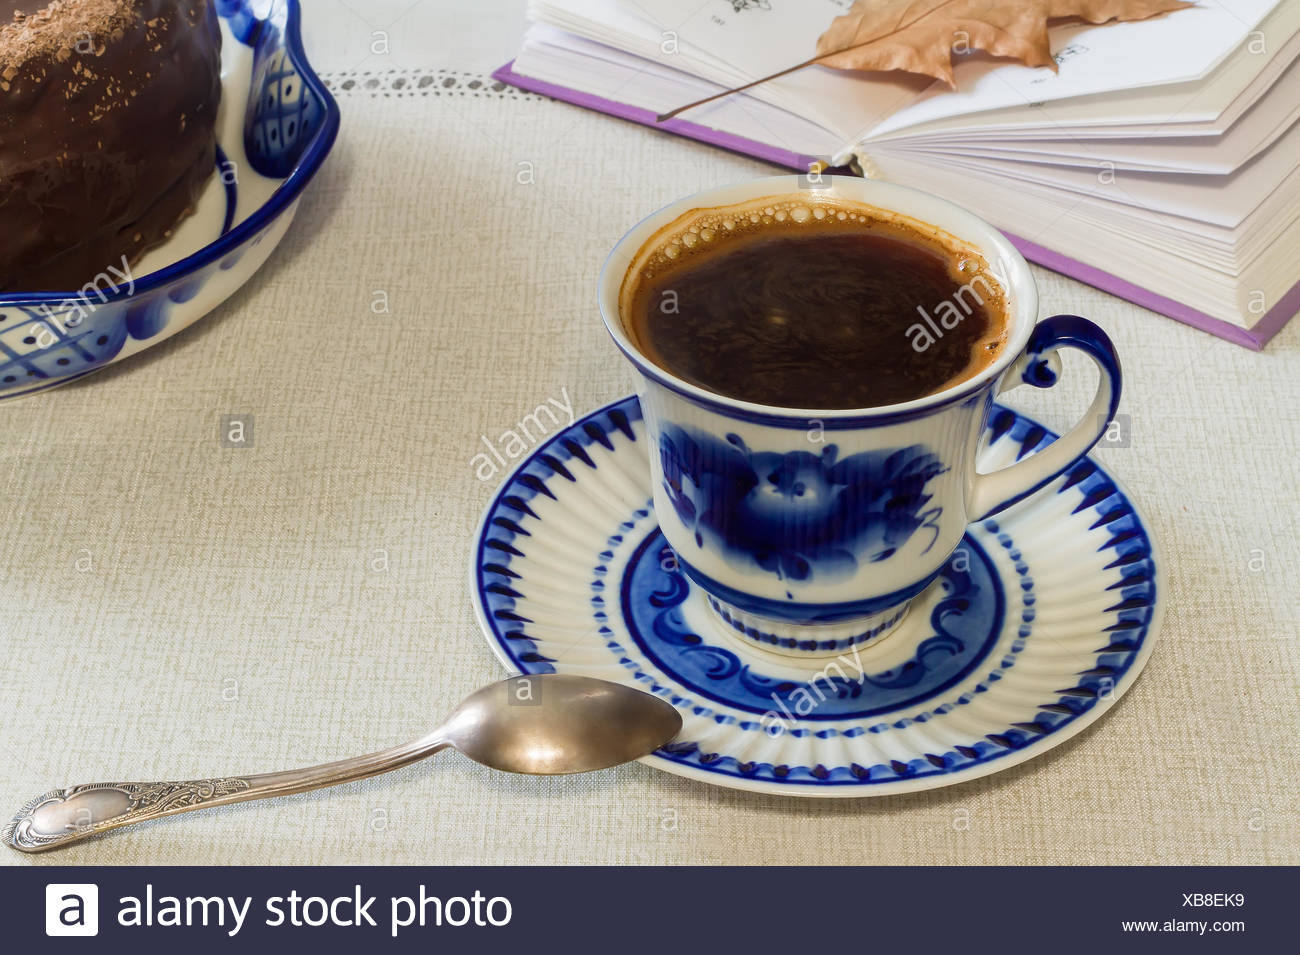 A Cup of black coffee and cake on the table. Stock Photo